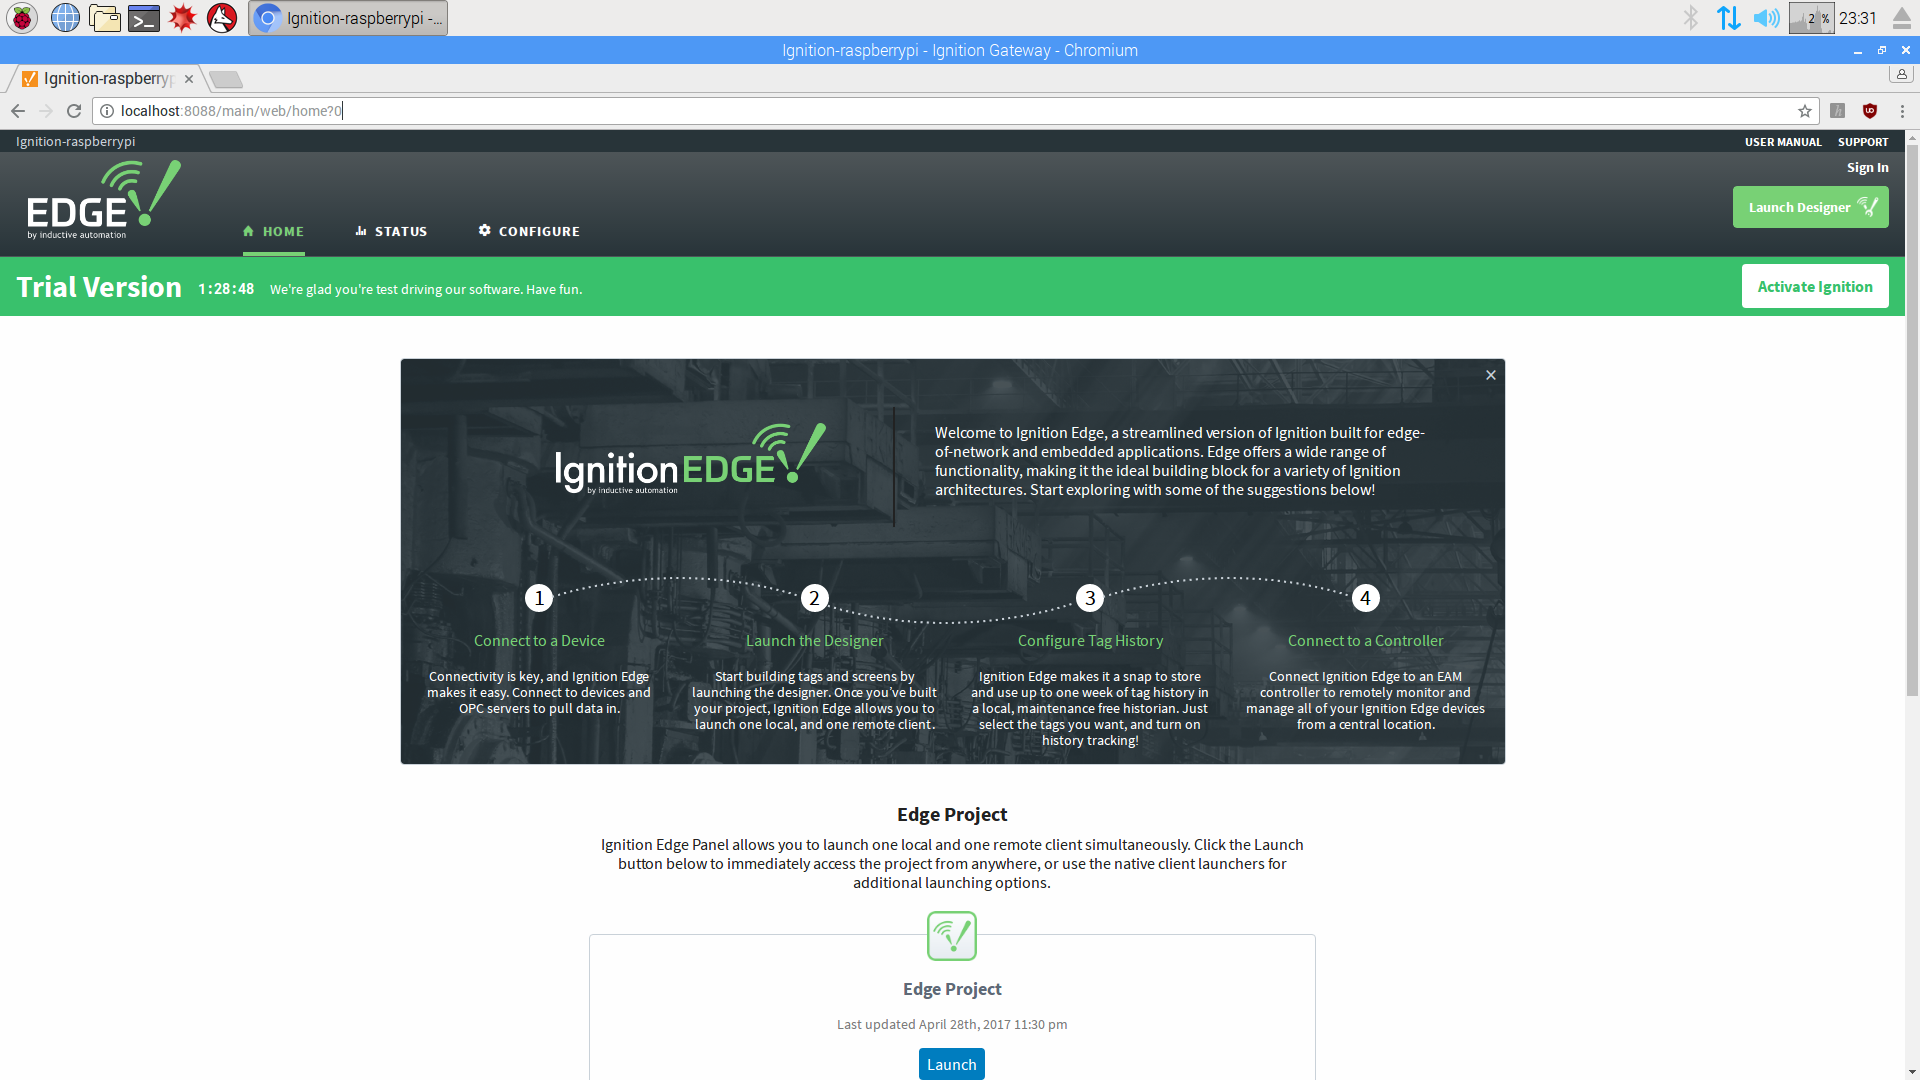 Ignition Edge Gateway's home page